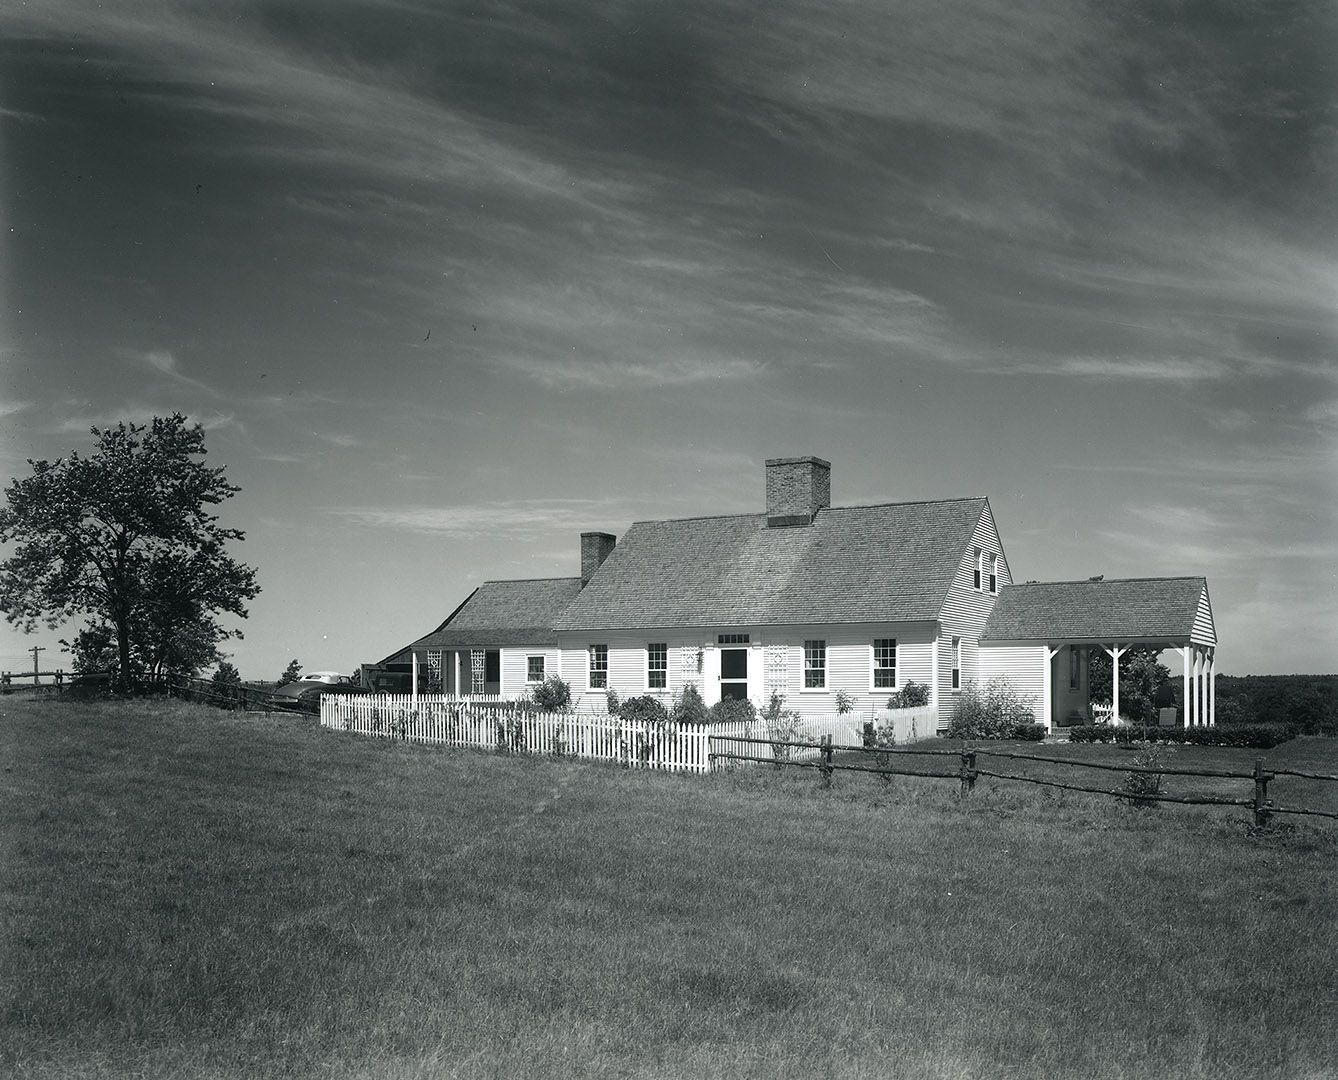 An undated photo of the family farm of novelist Gladys Hasty Carroll, Class of 1925, in the Dunnybrook community of South Berwick. Many of Carroll's novels described life in this farming community. (George French photo / Maine State Archives)